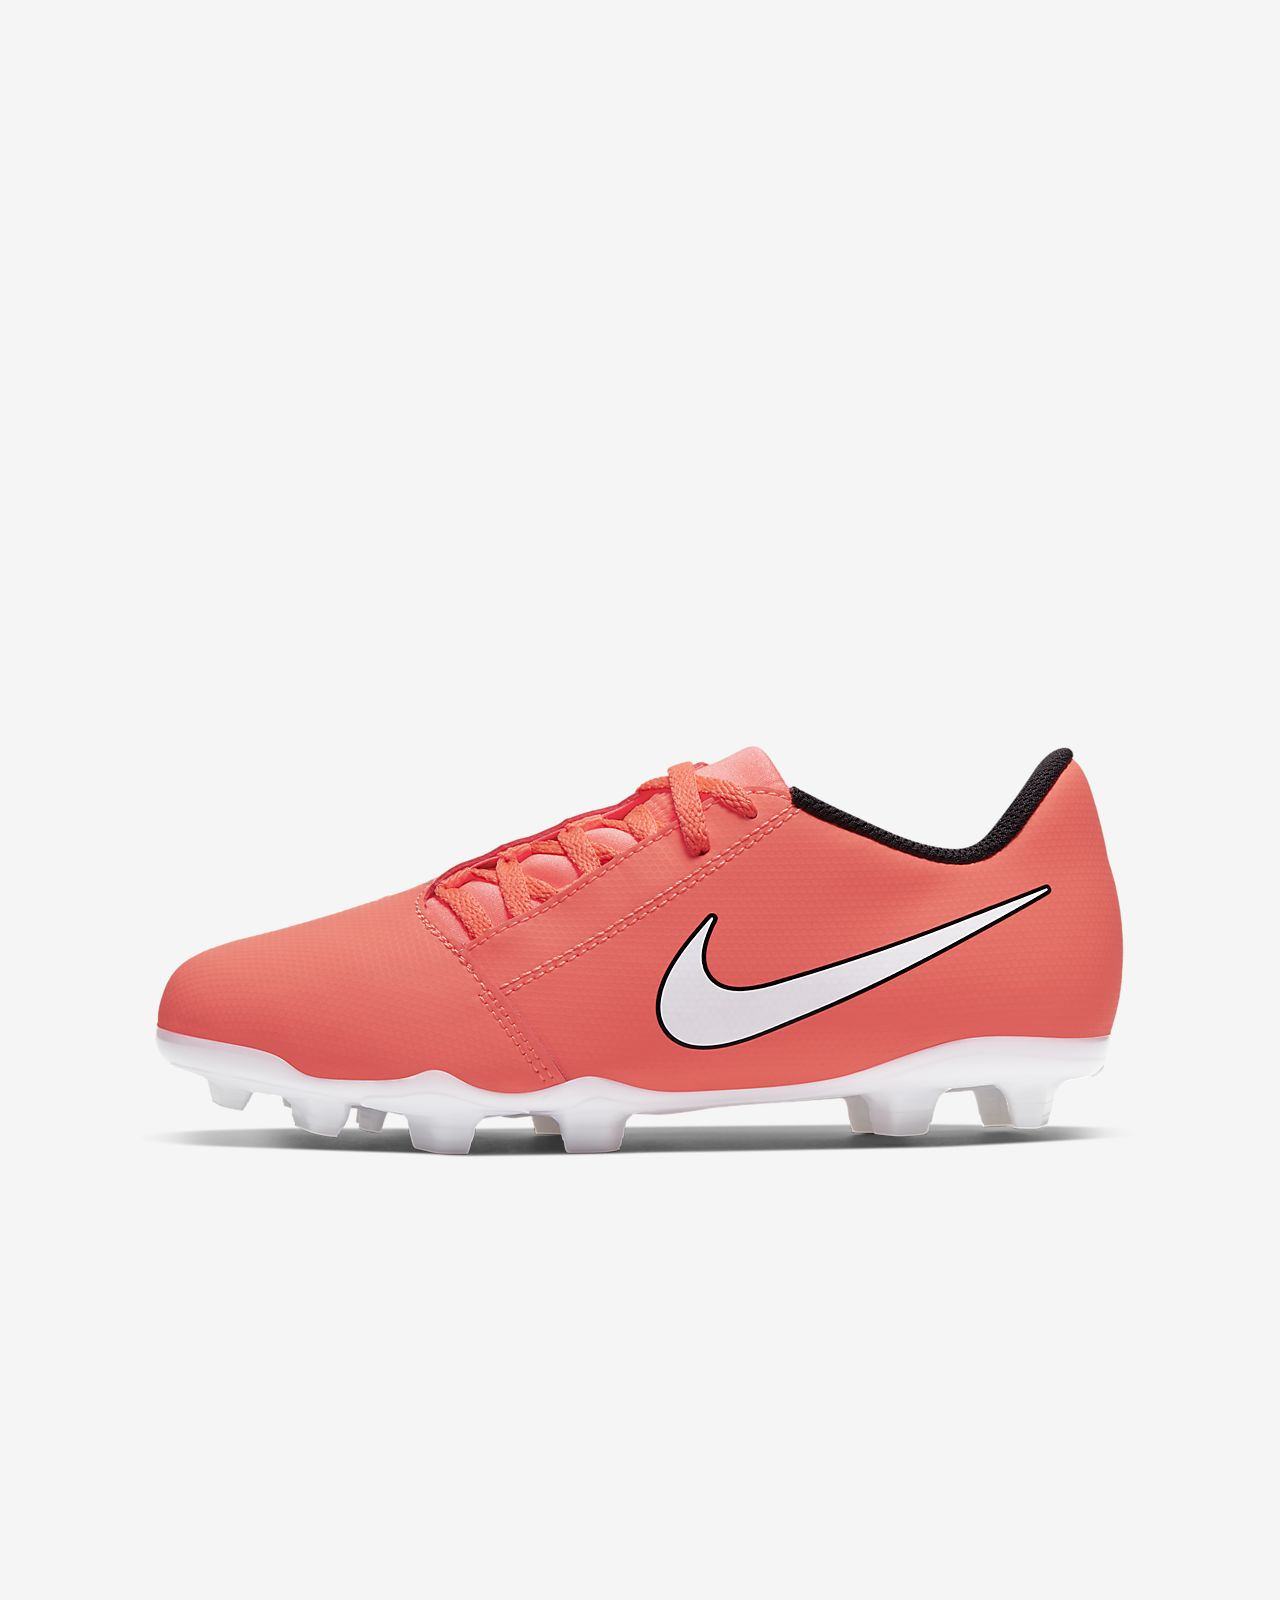 Alegre oler Mujer hermosa  Nike Jr. Phantom Venom Club FG Kids' Firm-Ground Football Boot. Nike CZ